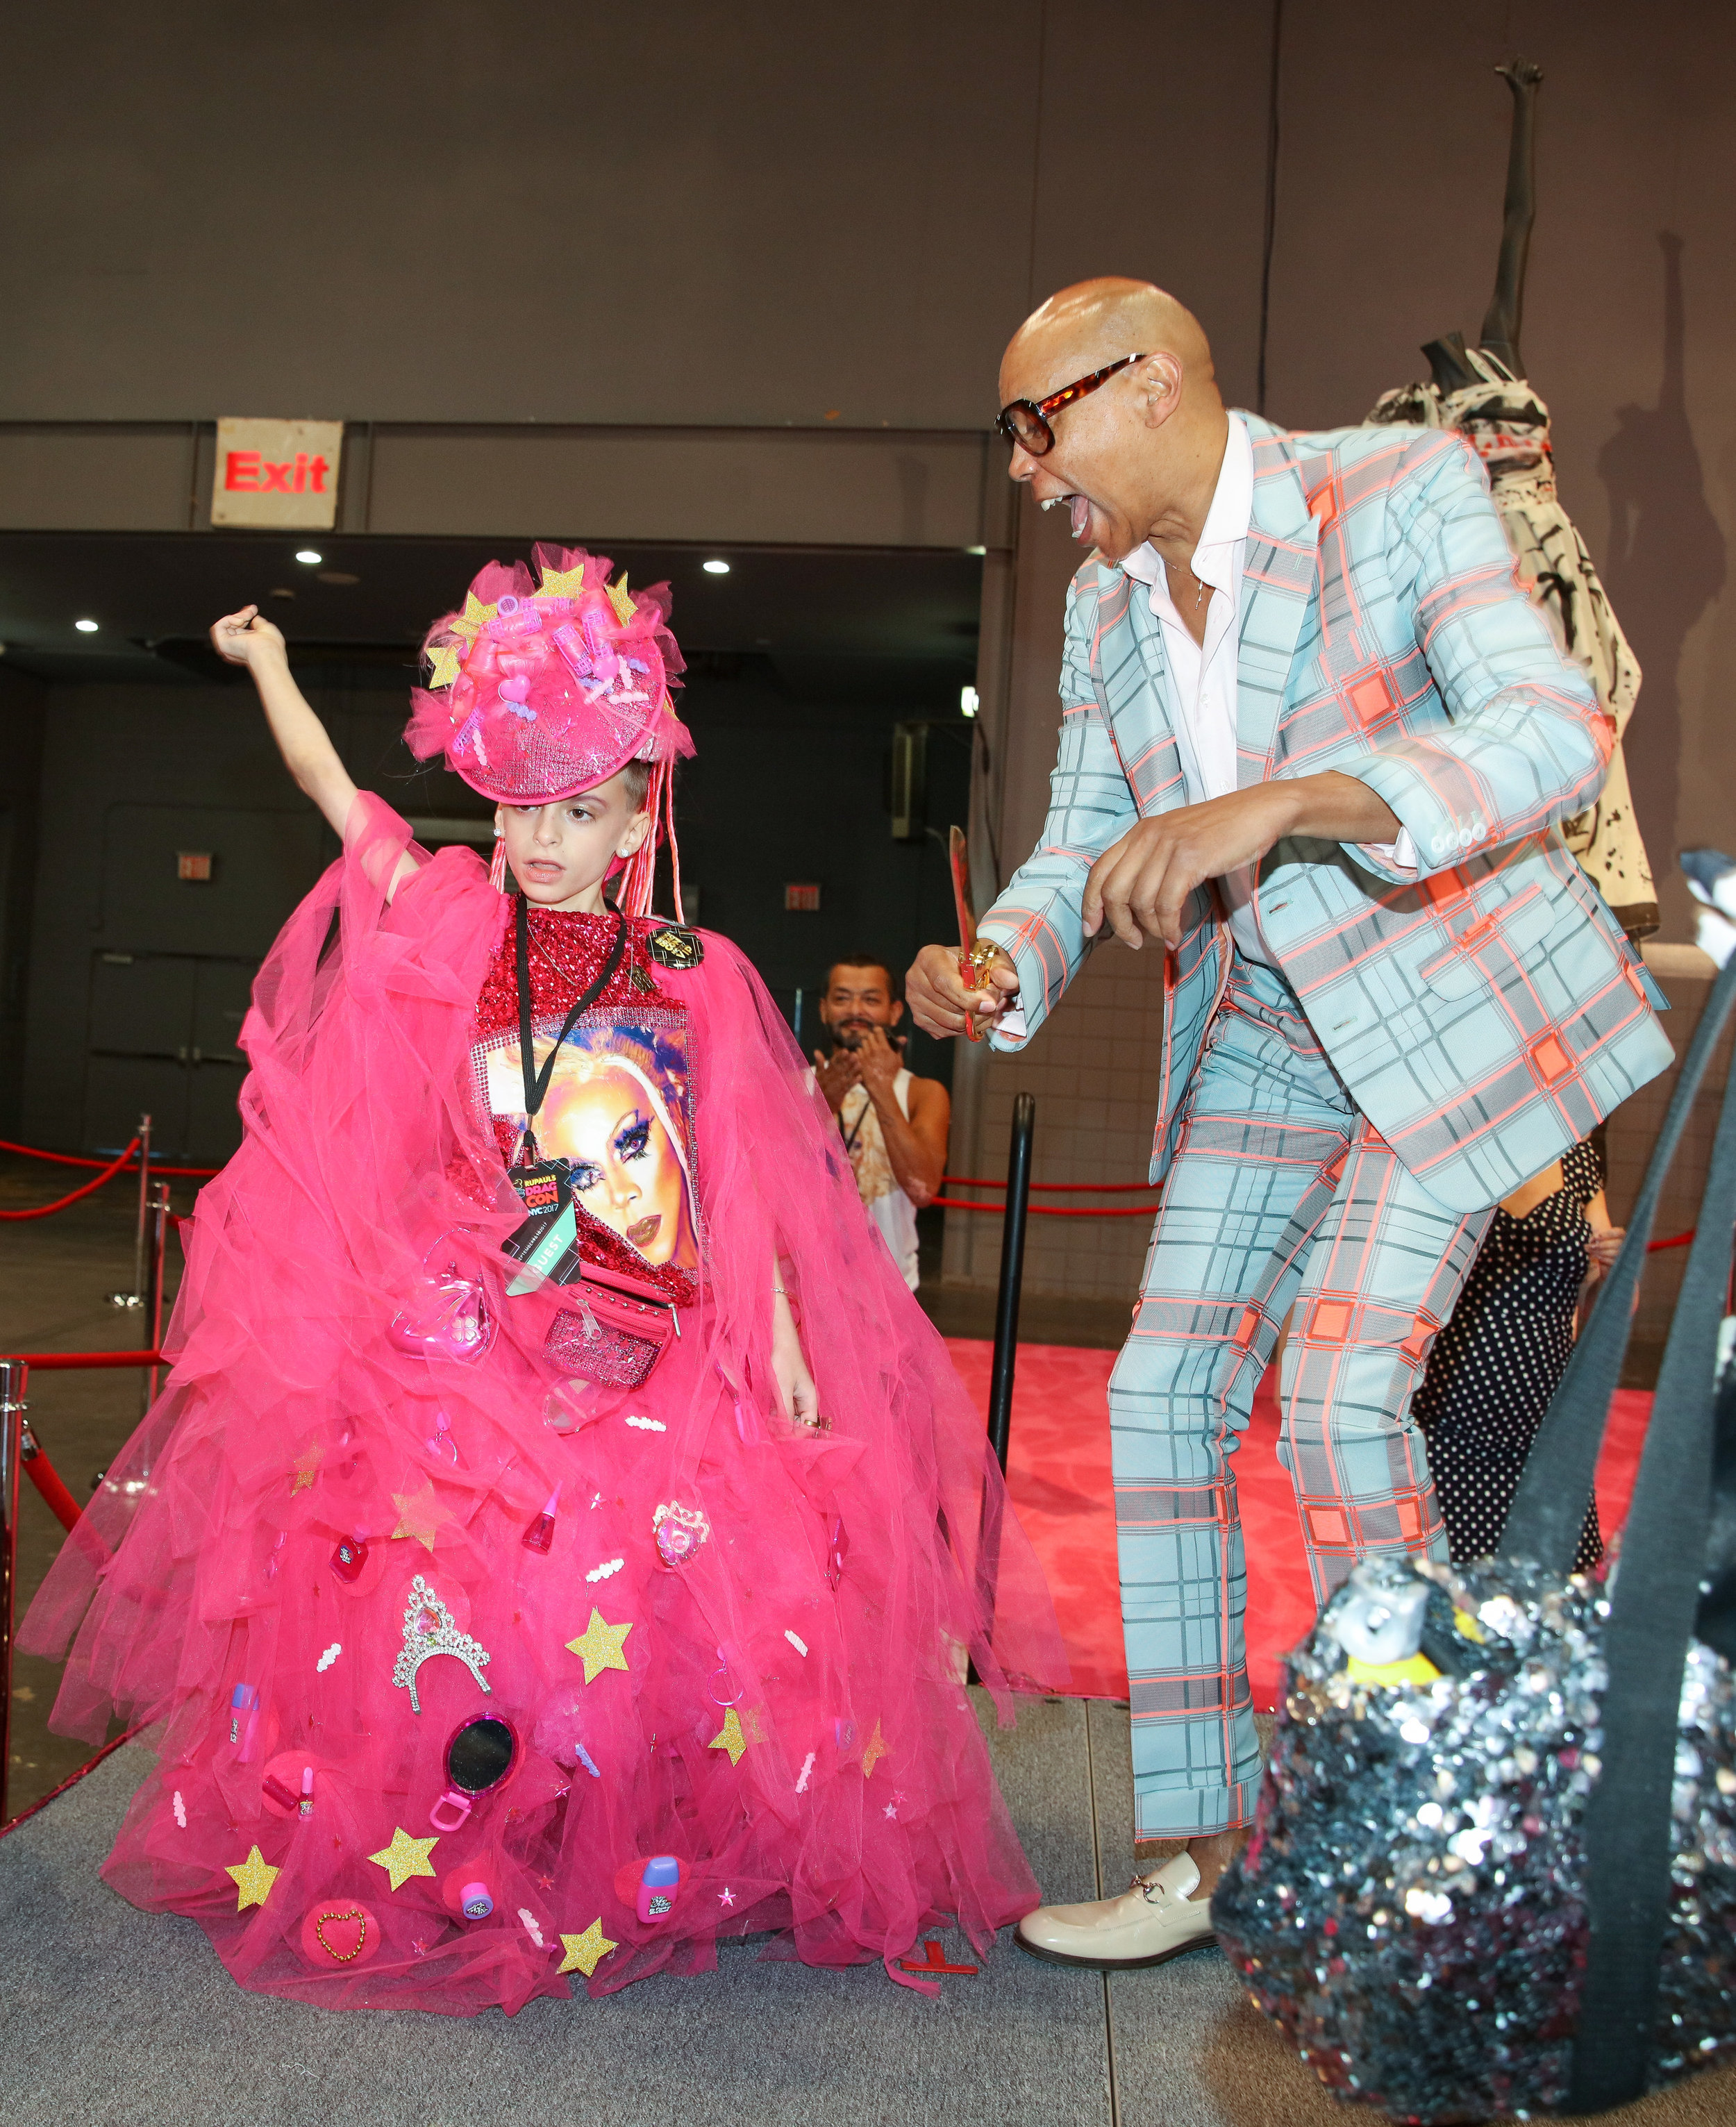 10-year-old Drag Queen Desmond is Amazing and RuPaul cut the ribbon to start off RuPaul's DragCon NYC 2017. - Photo provided by World of Wonder